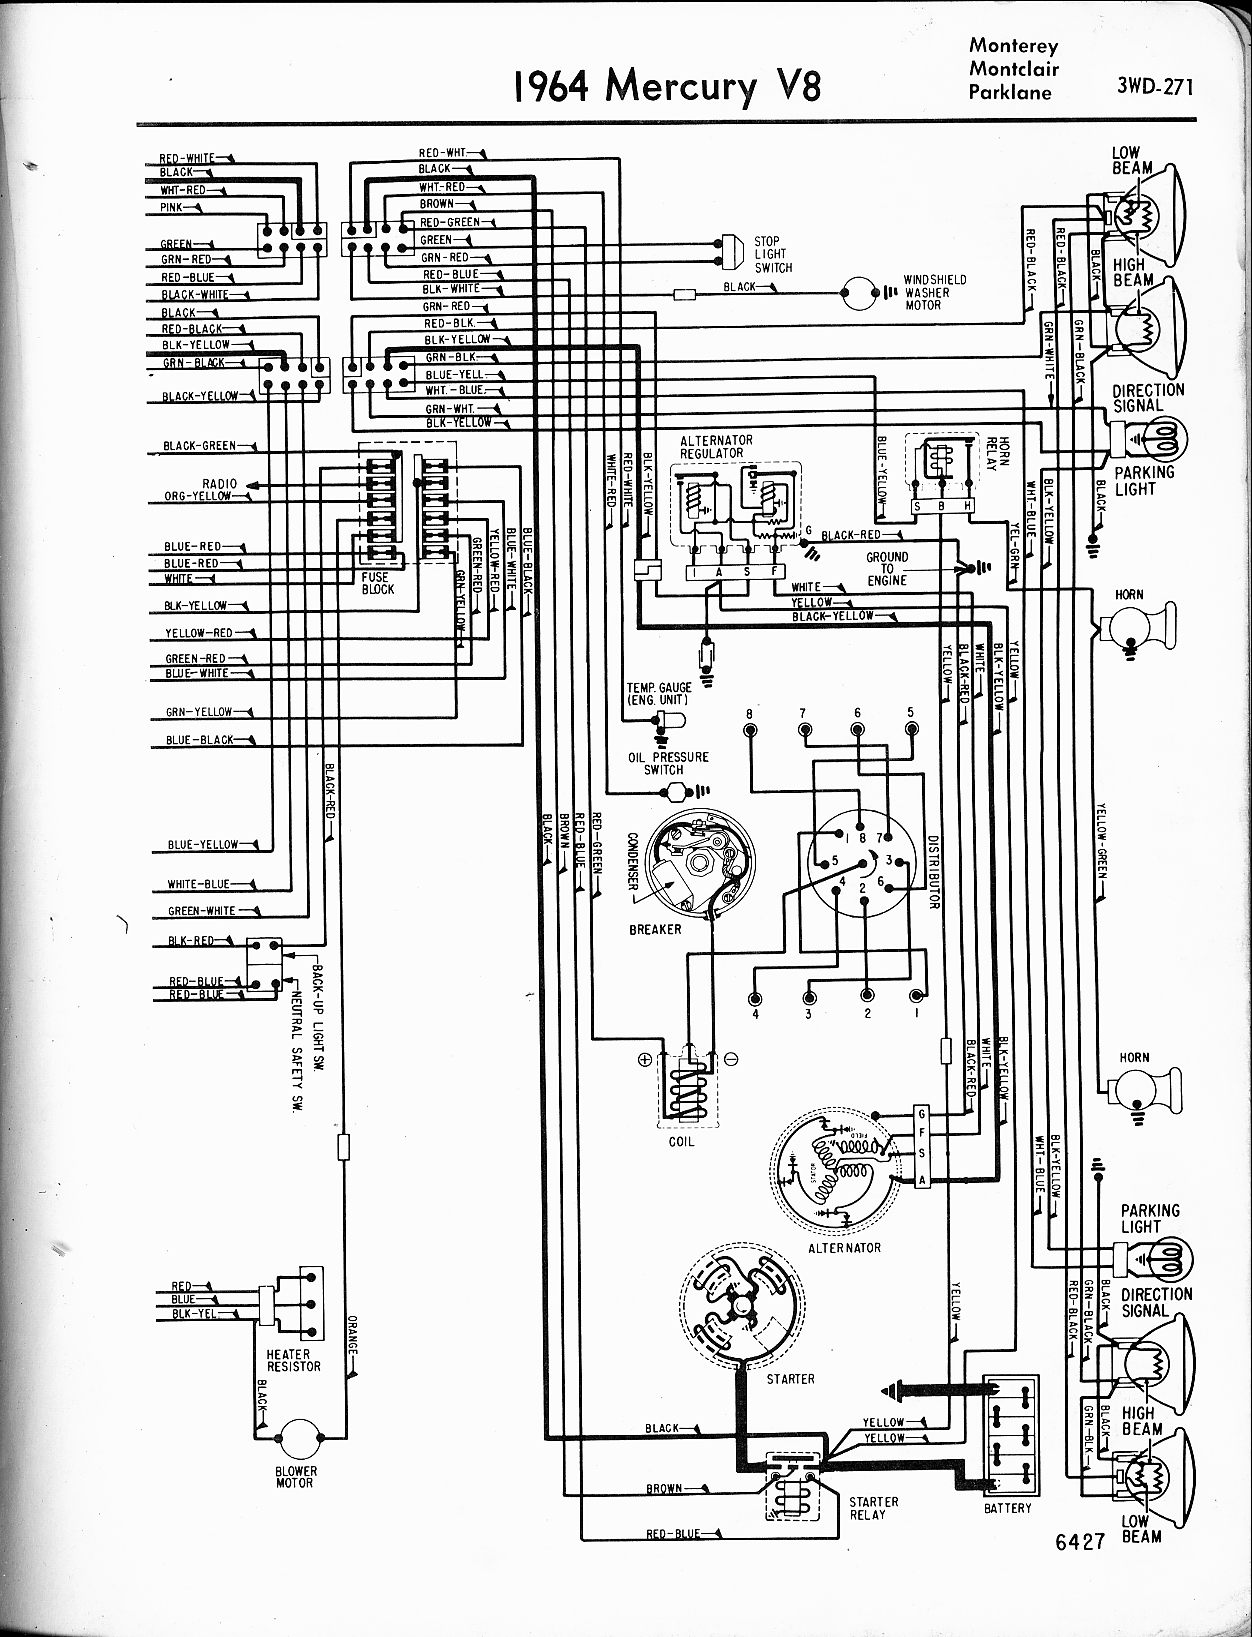 MWire5765 271 mercury wiring diagrams the old car manual project 1965 ford alternator wiring diagram at eliteediting.co